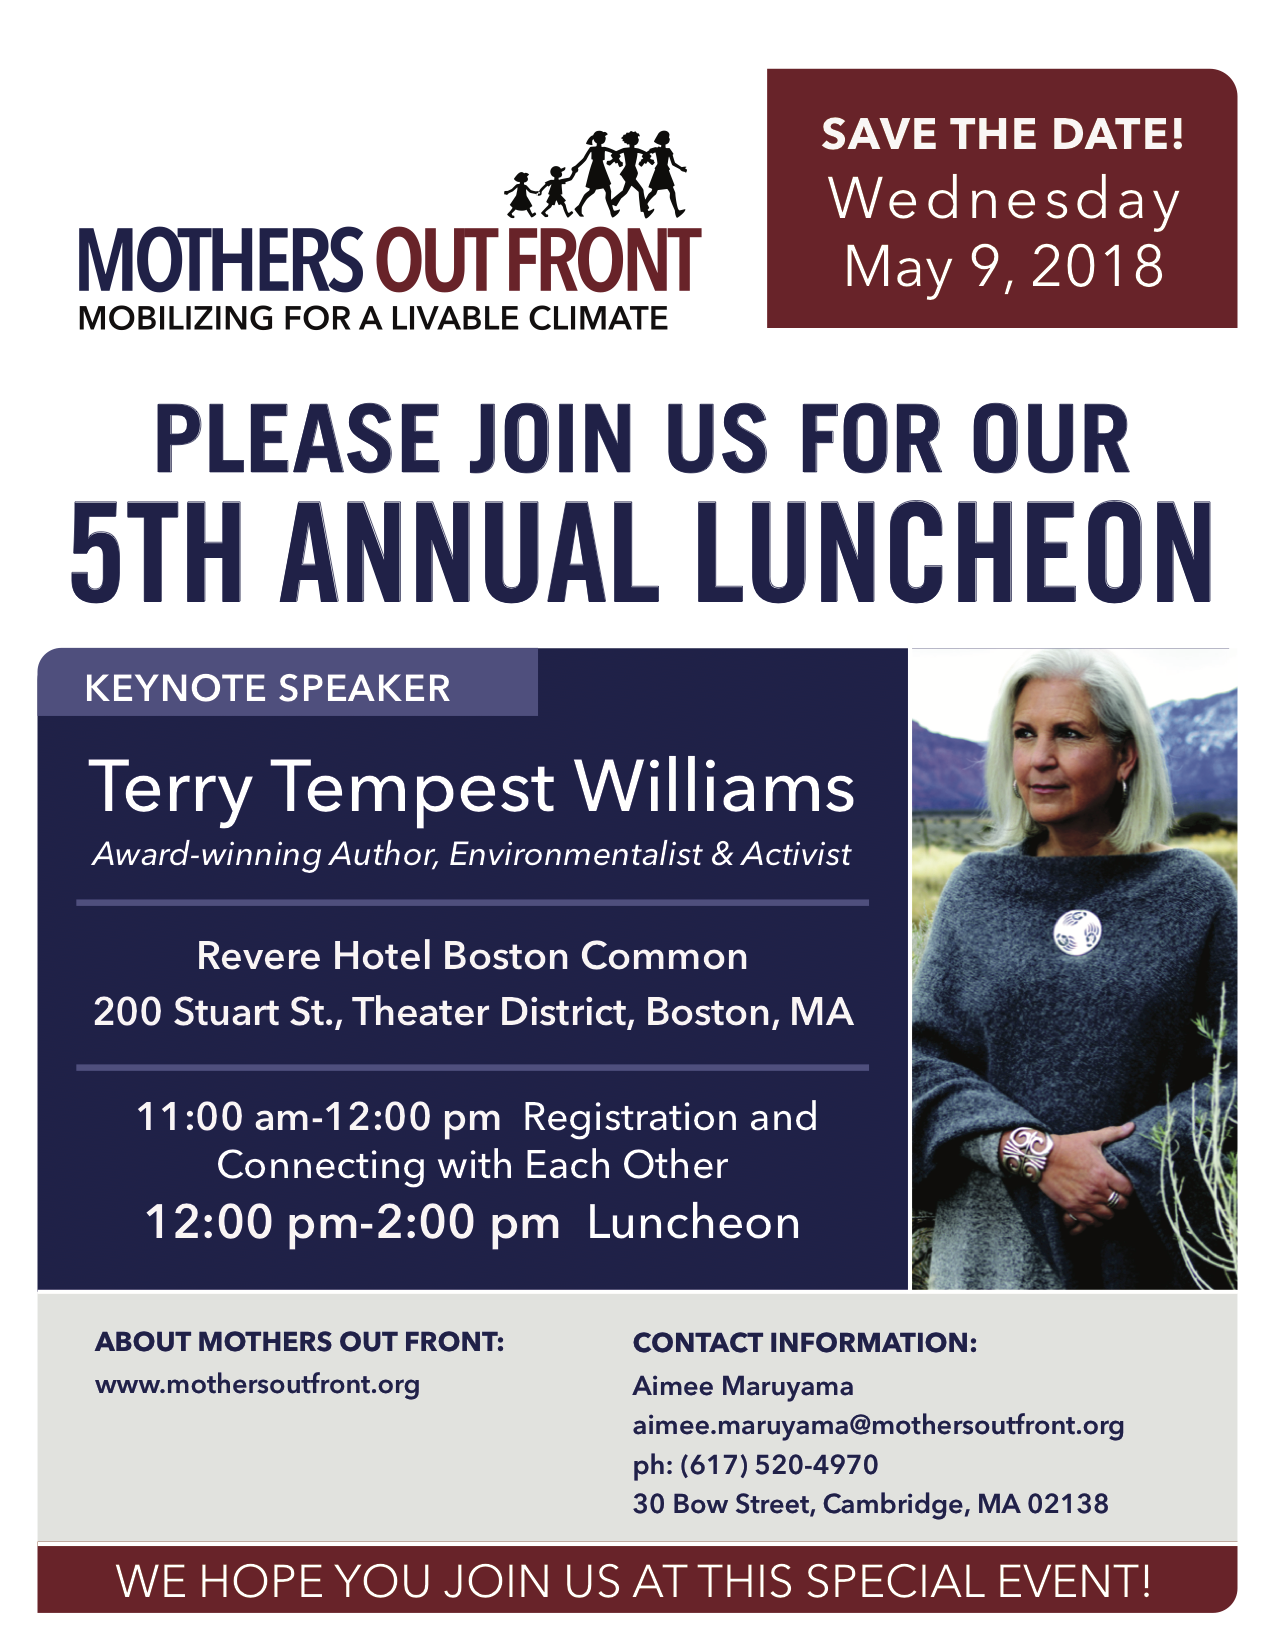 Mothers_Out_Front_5th_Annual_Luncheon_2018.png